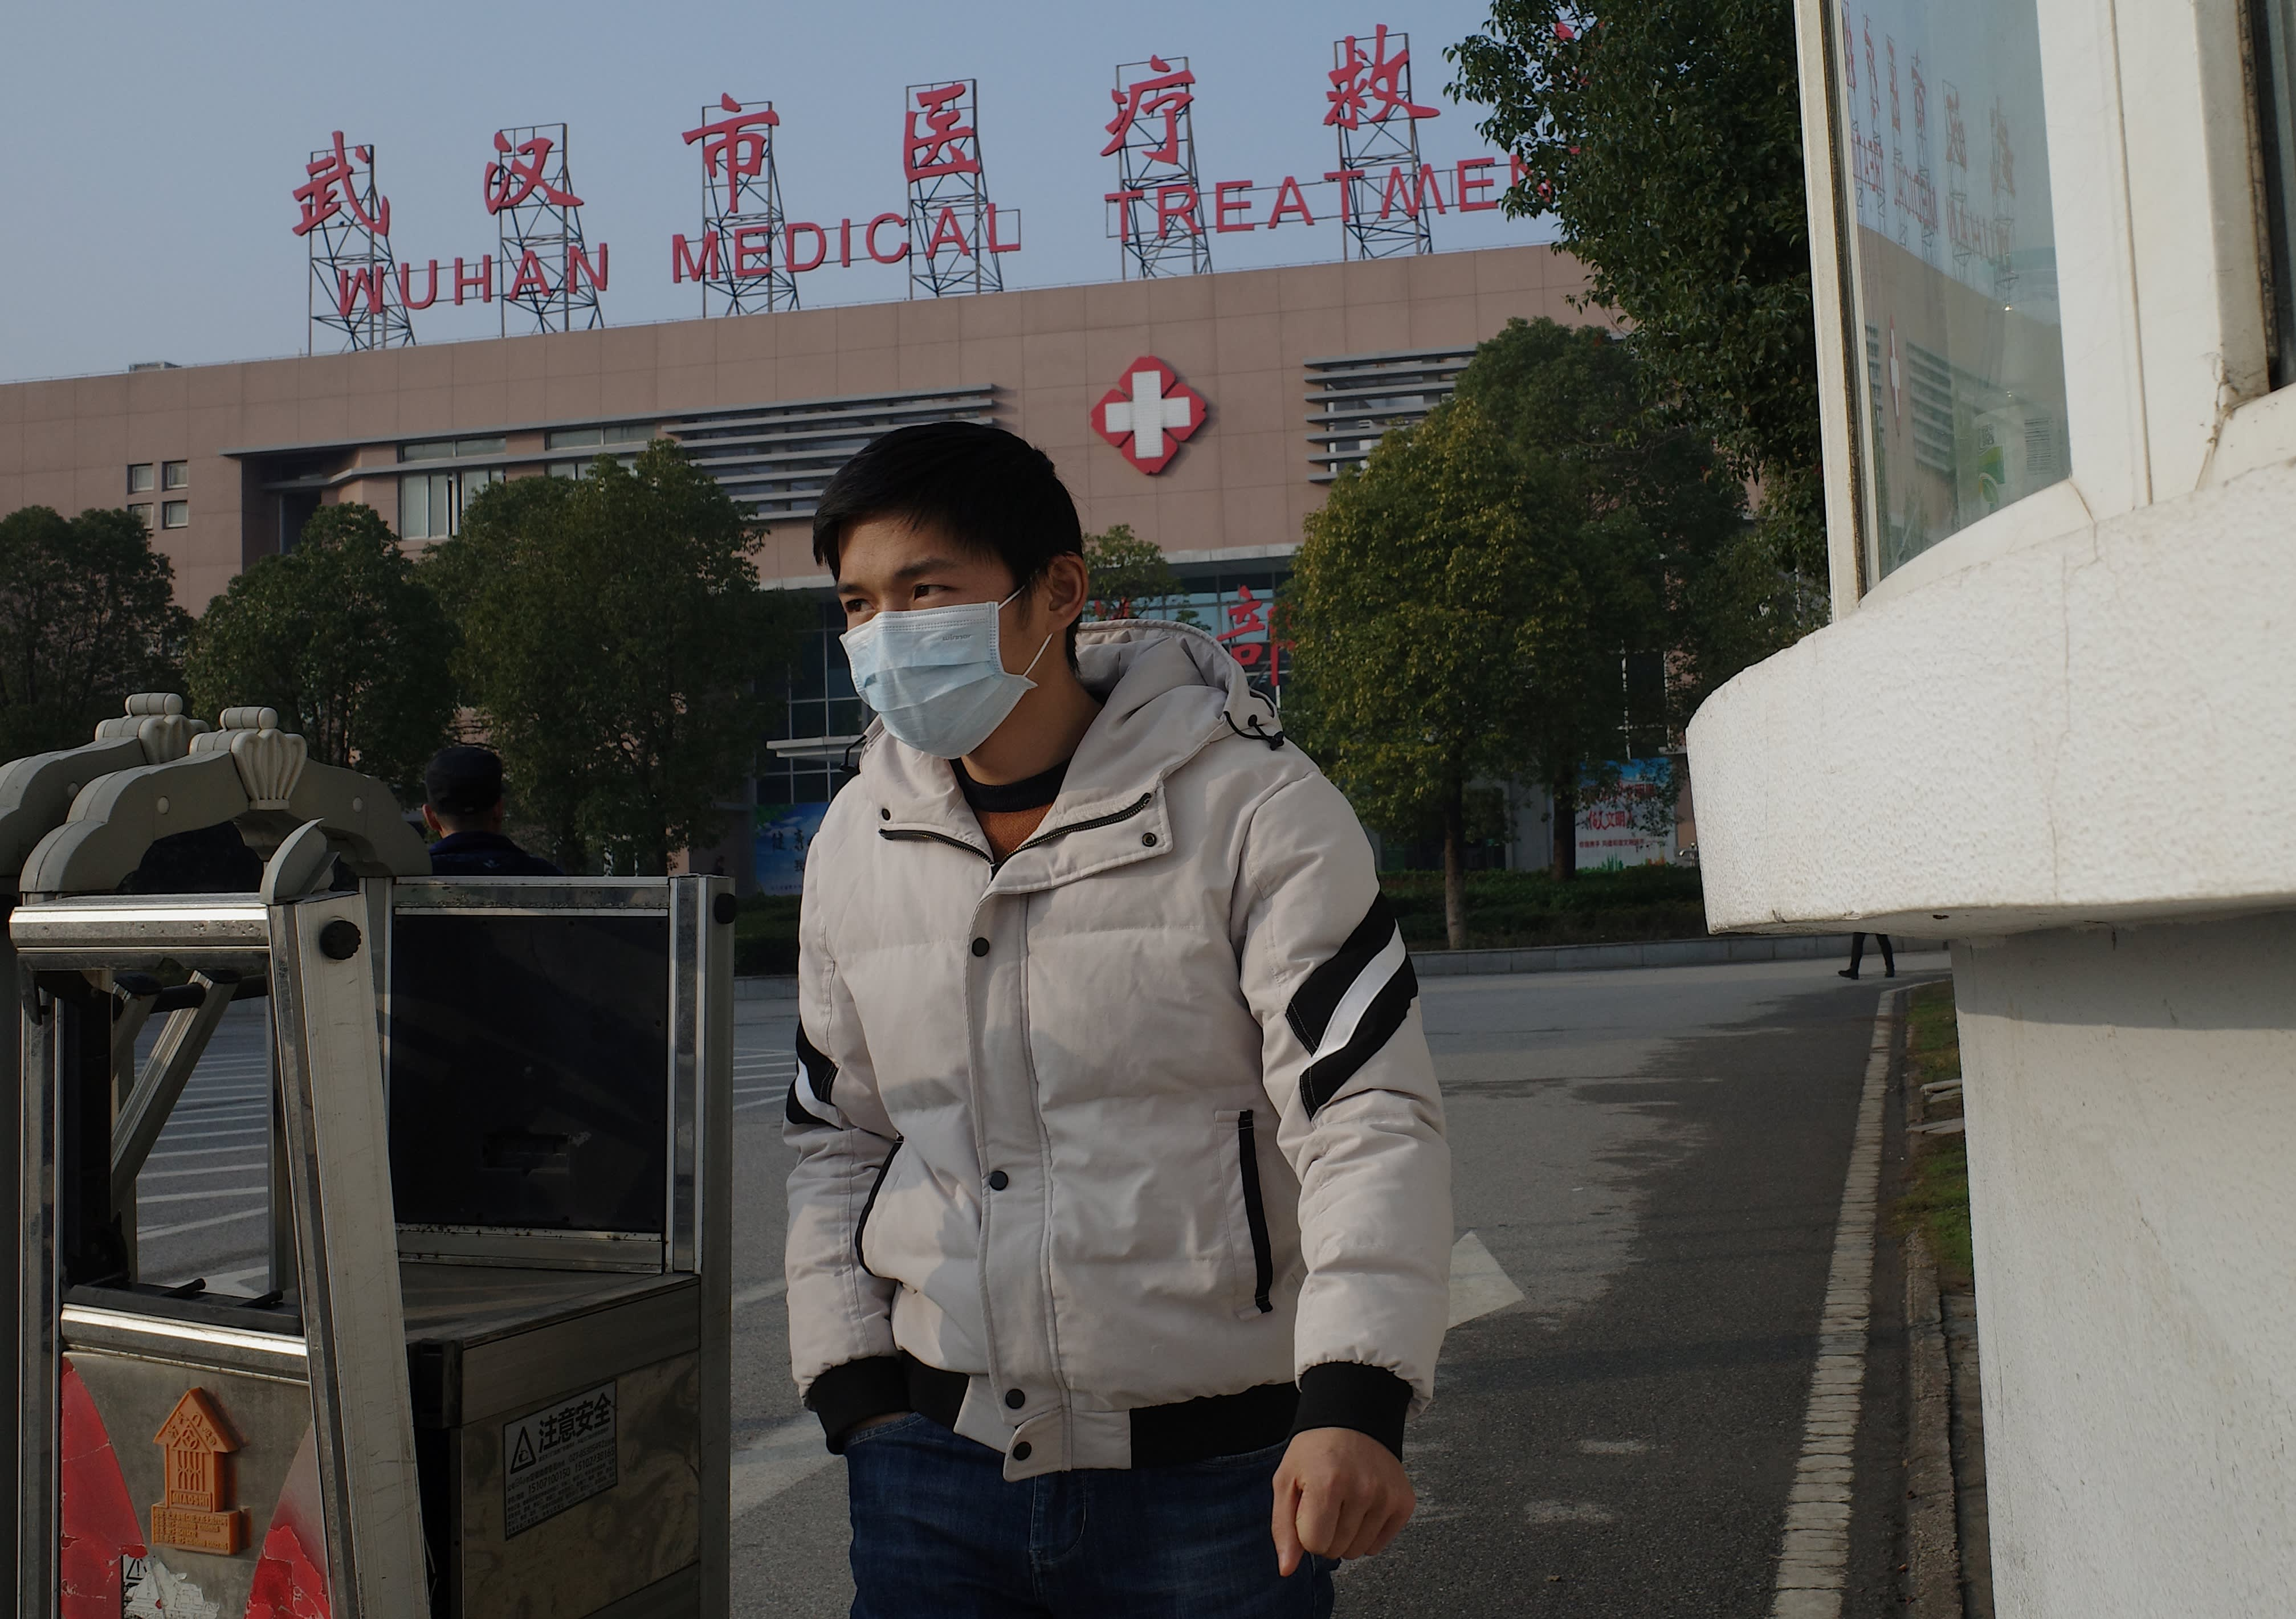 China says it is building 1,000-bed hospital over the weekend to treat coronavirus